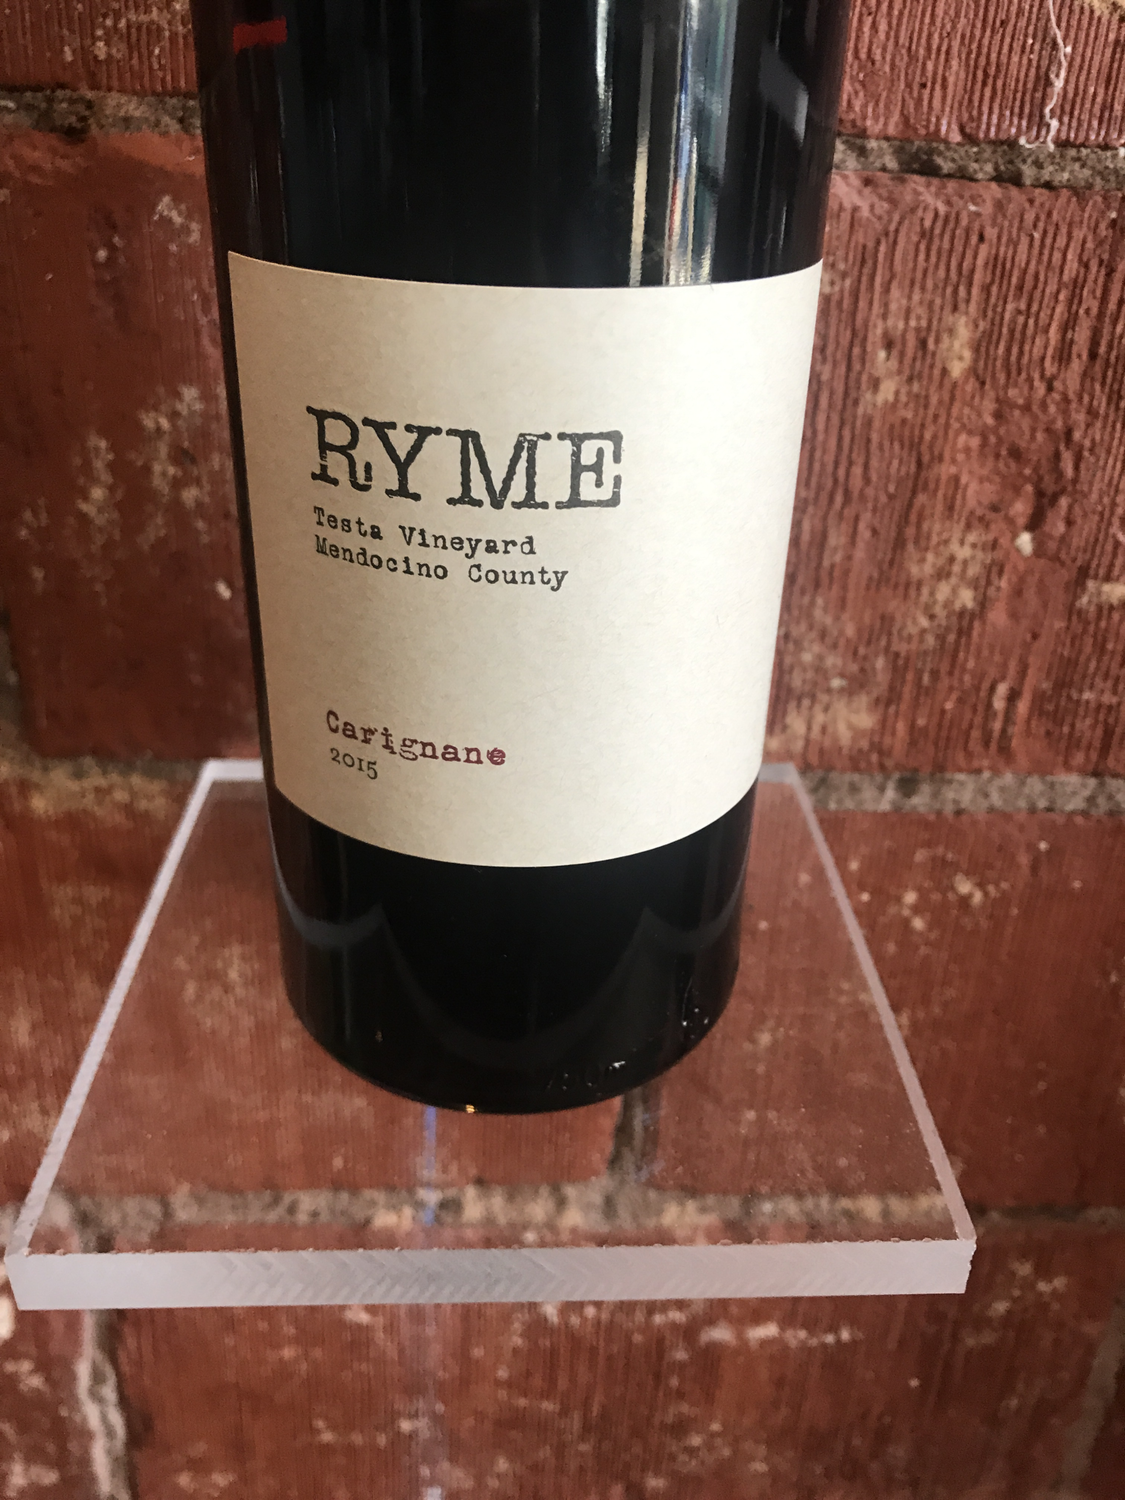 Ryme Cellars Testa Vineyard Carignan 2015